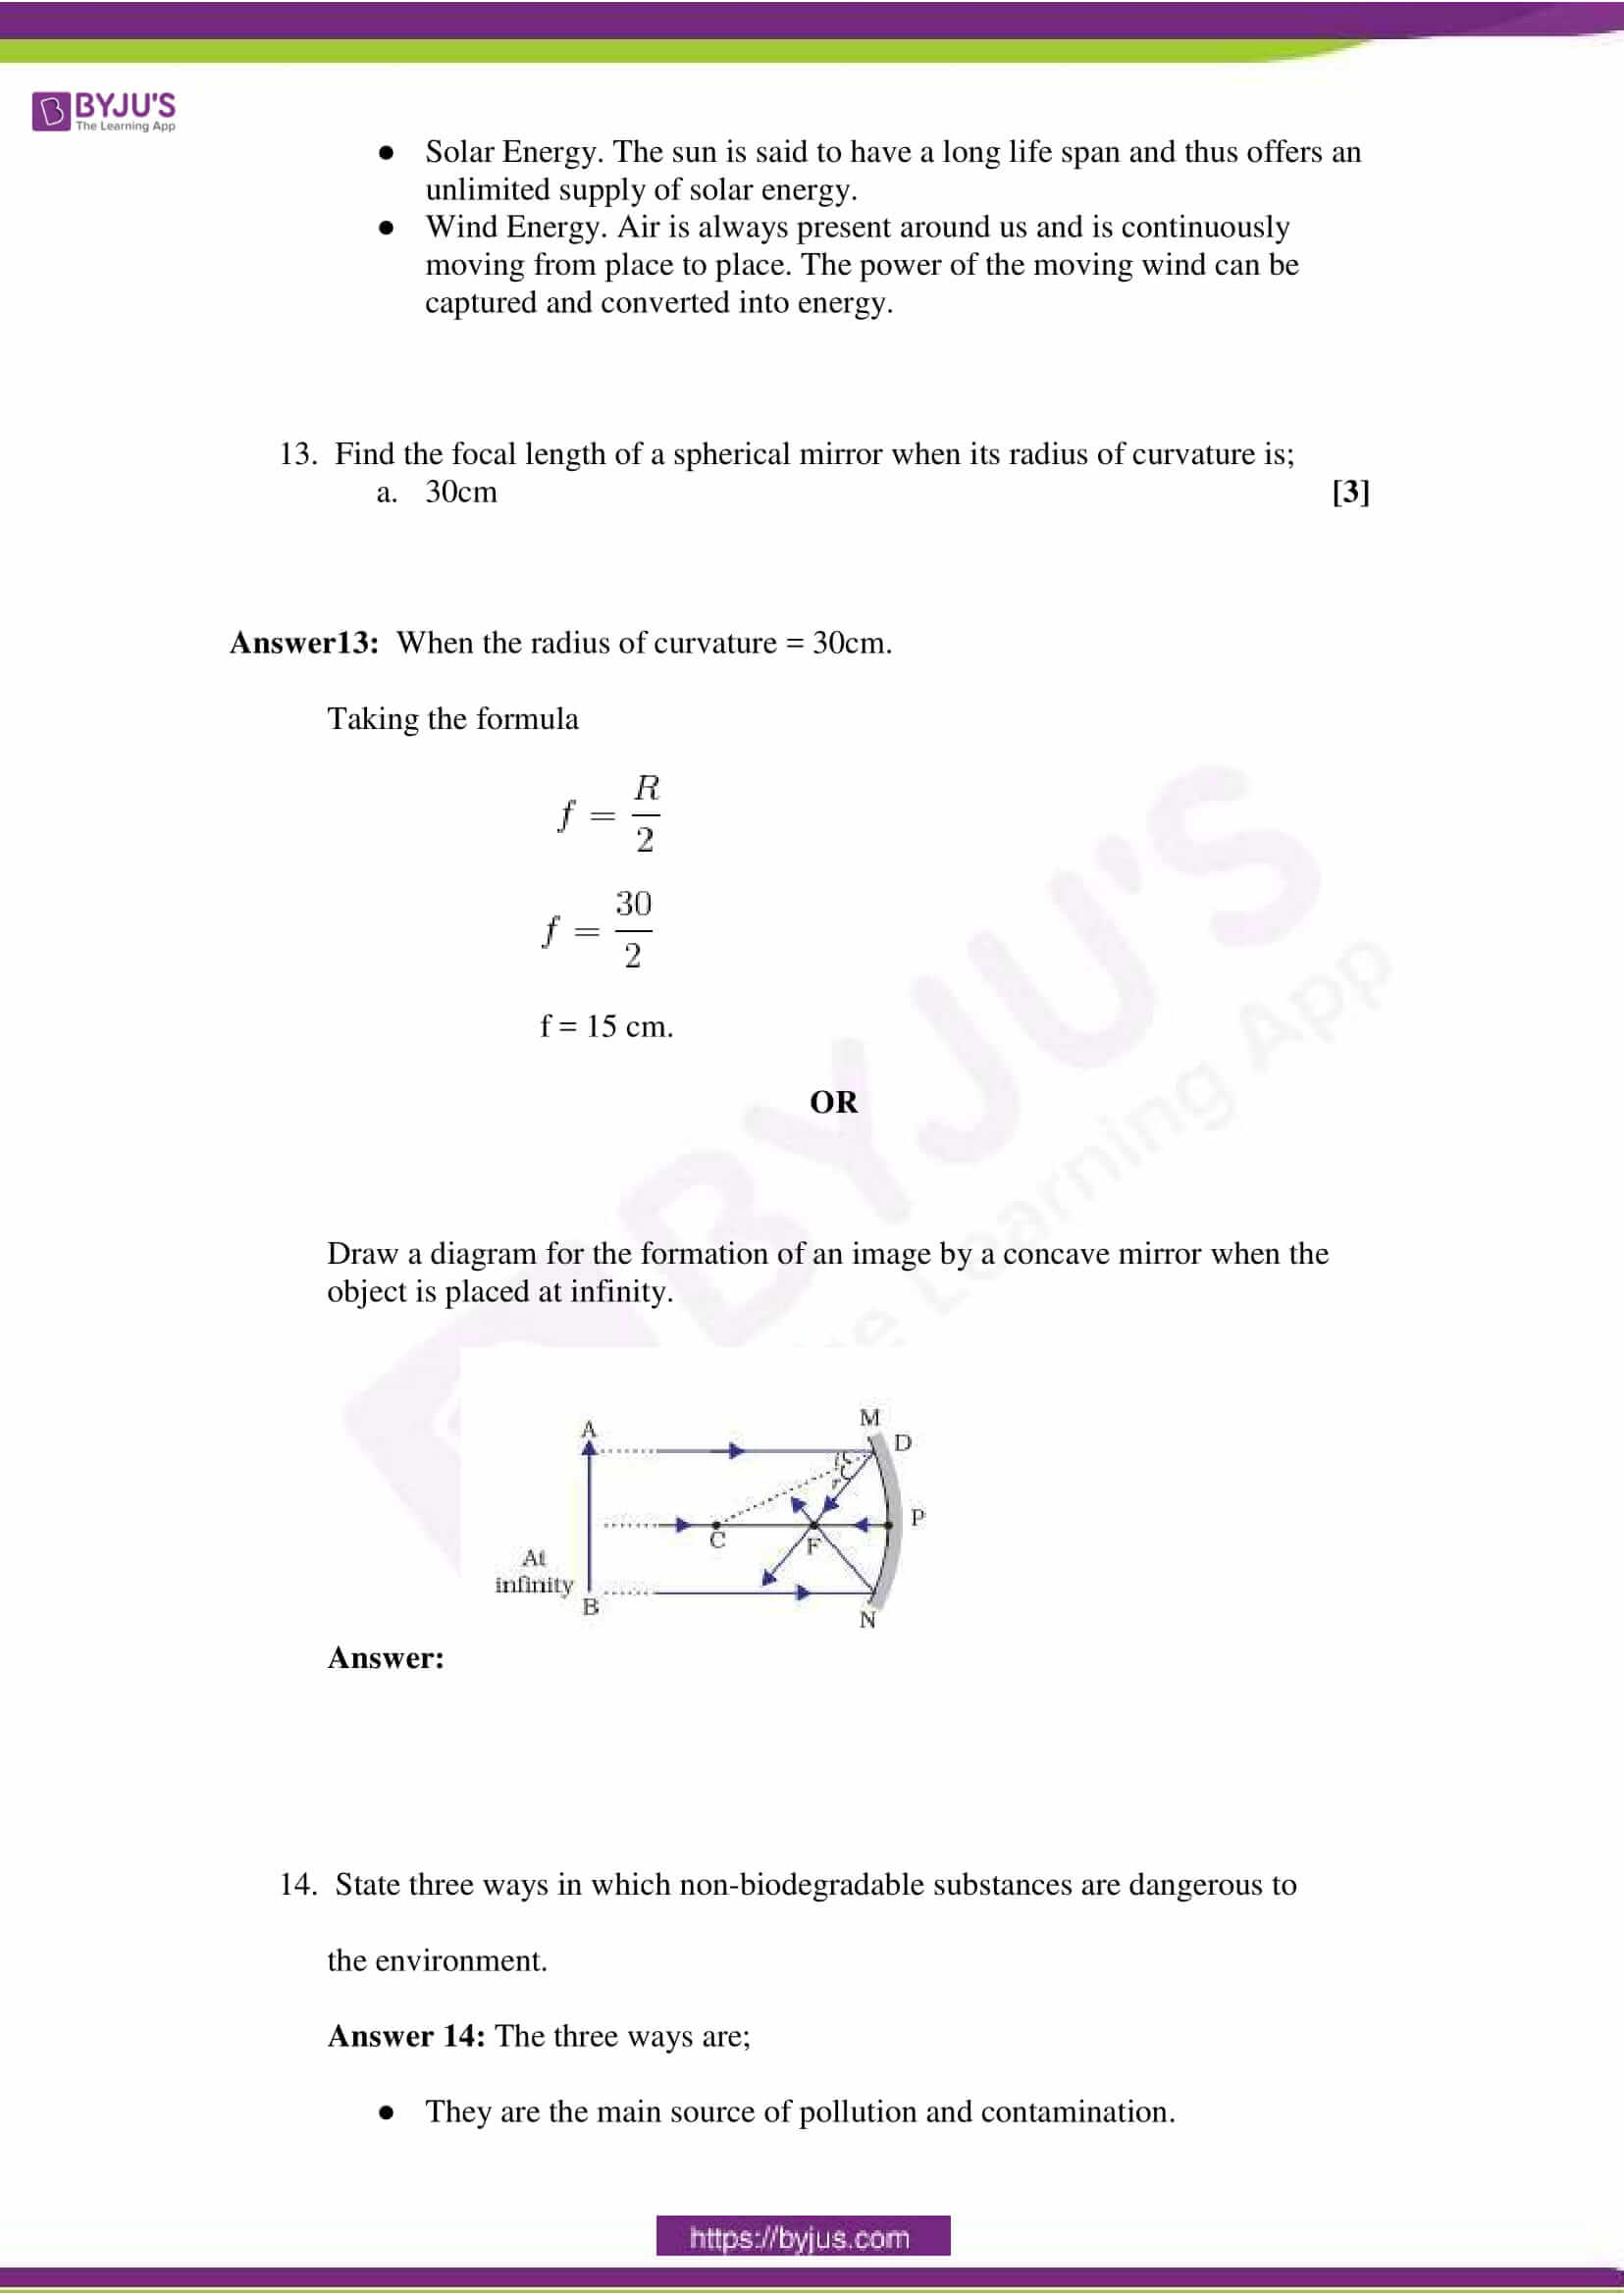 CBSE Class 10 Science Sample Paper Solution Set 4-4